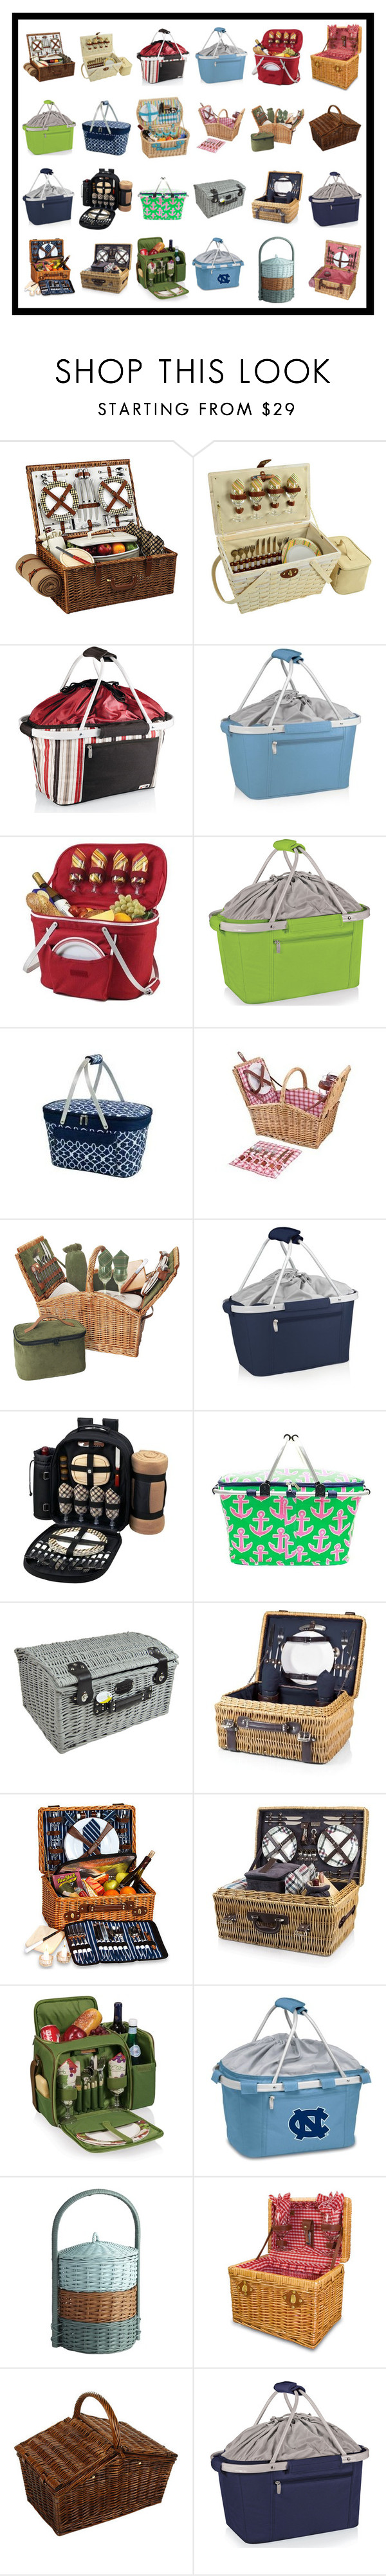 """Picnic Baskets #1"" by franceseattle ❤ liked on Polyvore featuring interior, interiors, interior design, home, home decor, interior decorating, Picnic at Ascot, Picnic Time, Wine Enthusiast and Pier 1 Imports"